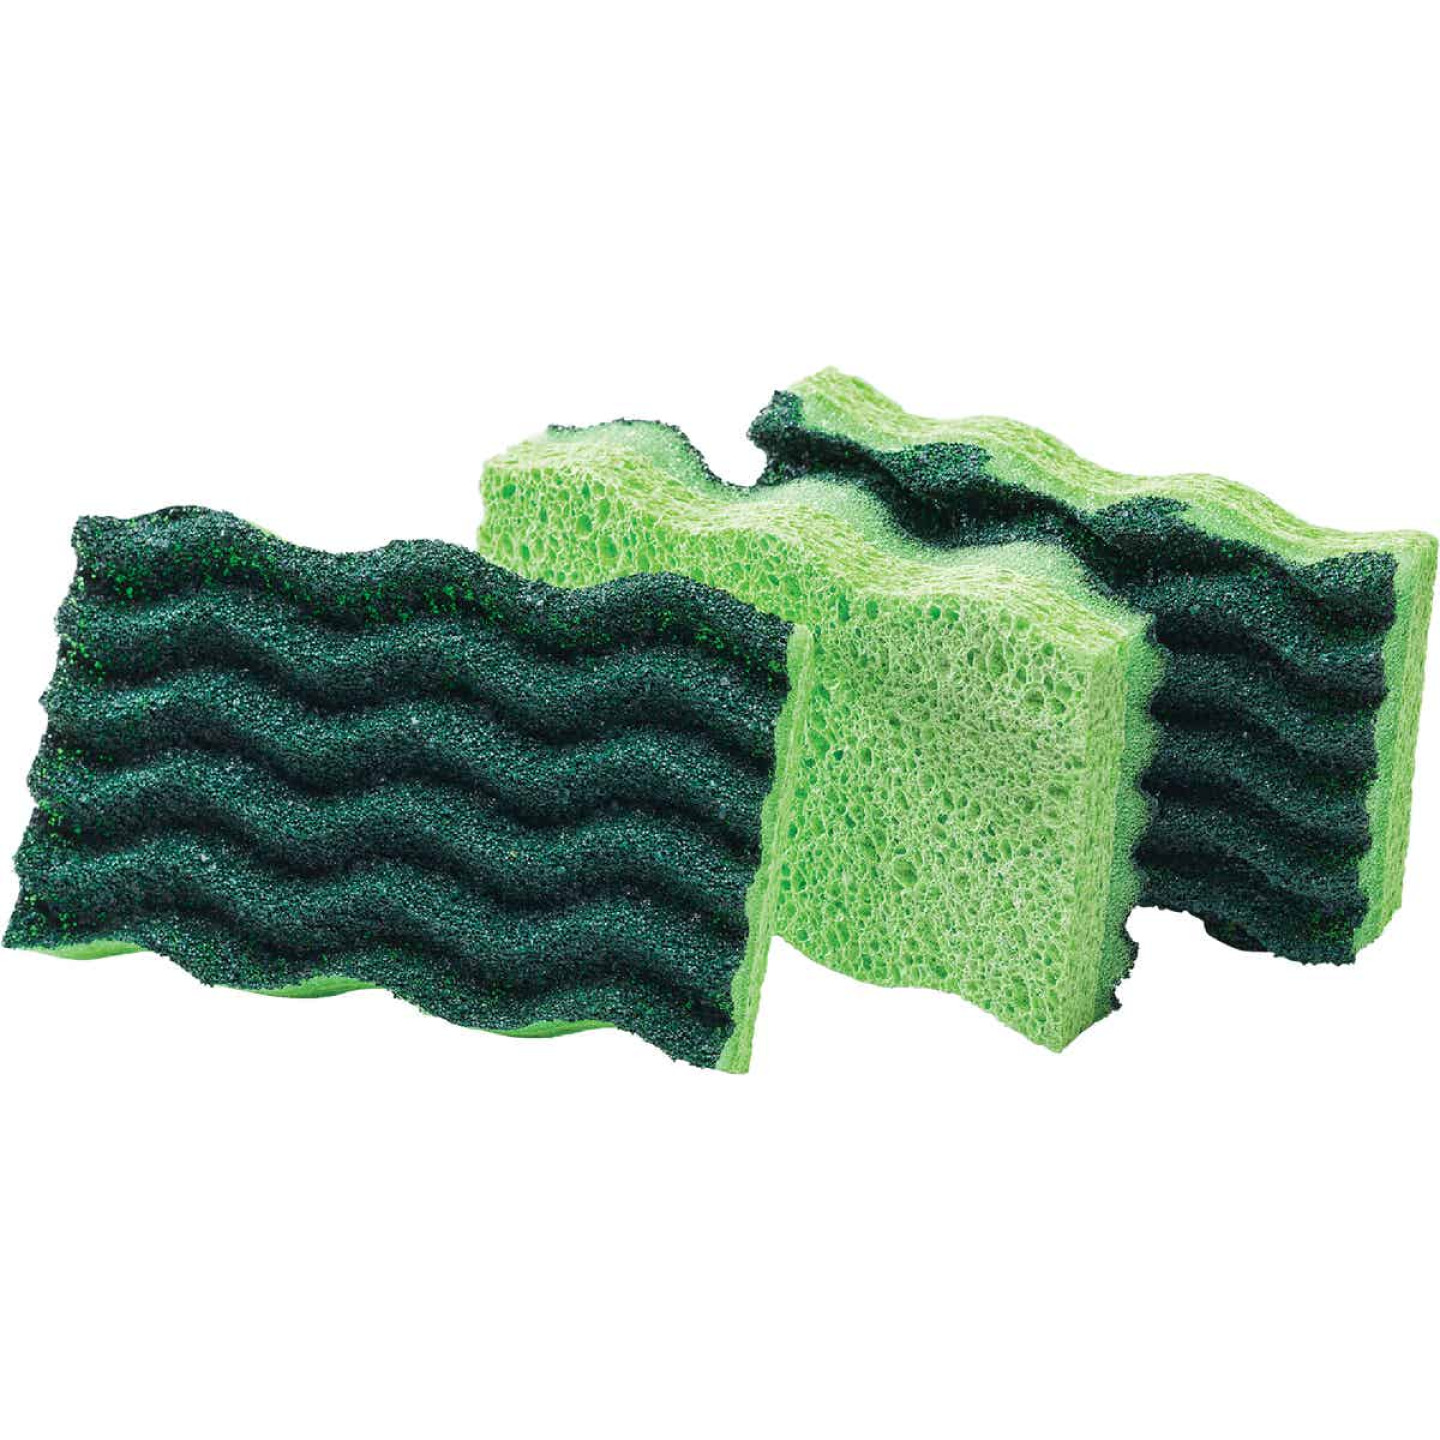 Libman 4.5 In. x 3 In. Yellow & Green Heavy Duty Scrub Heavy Duty Sponge (3-Count) Image 1